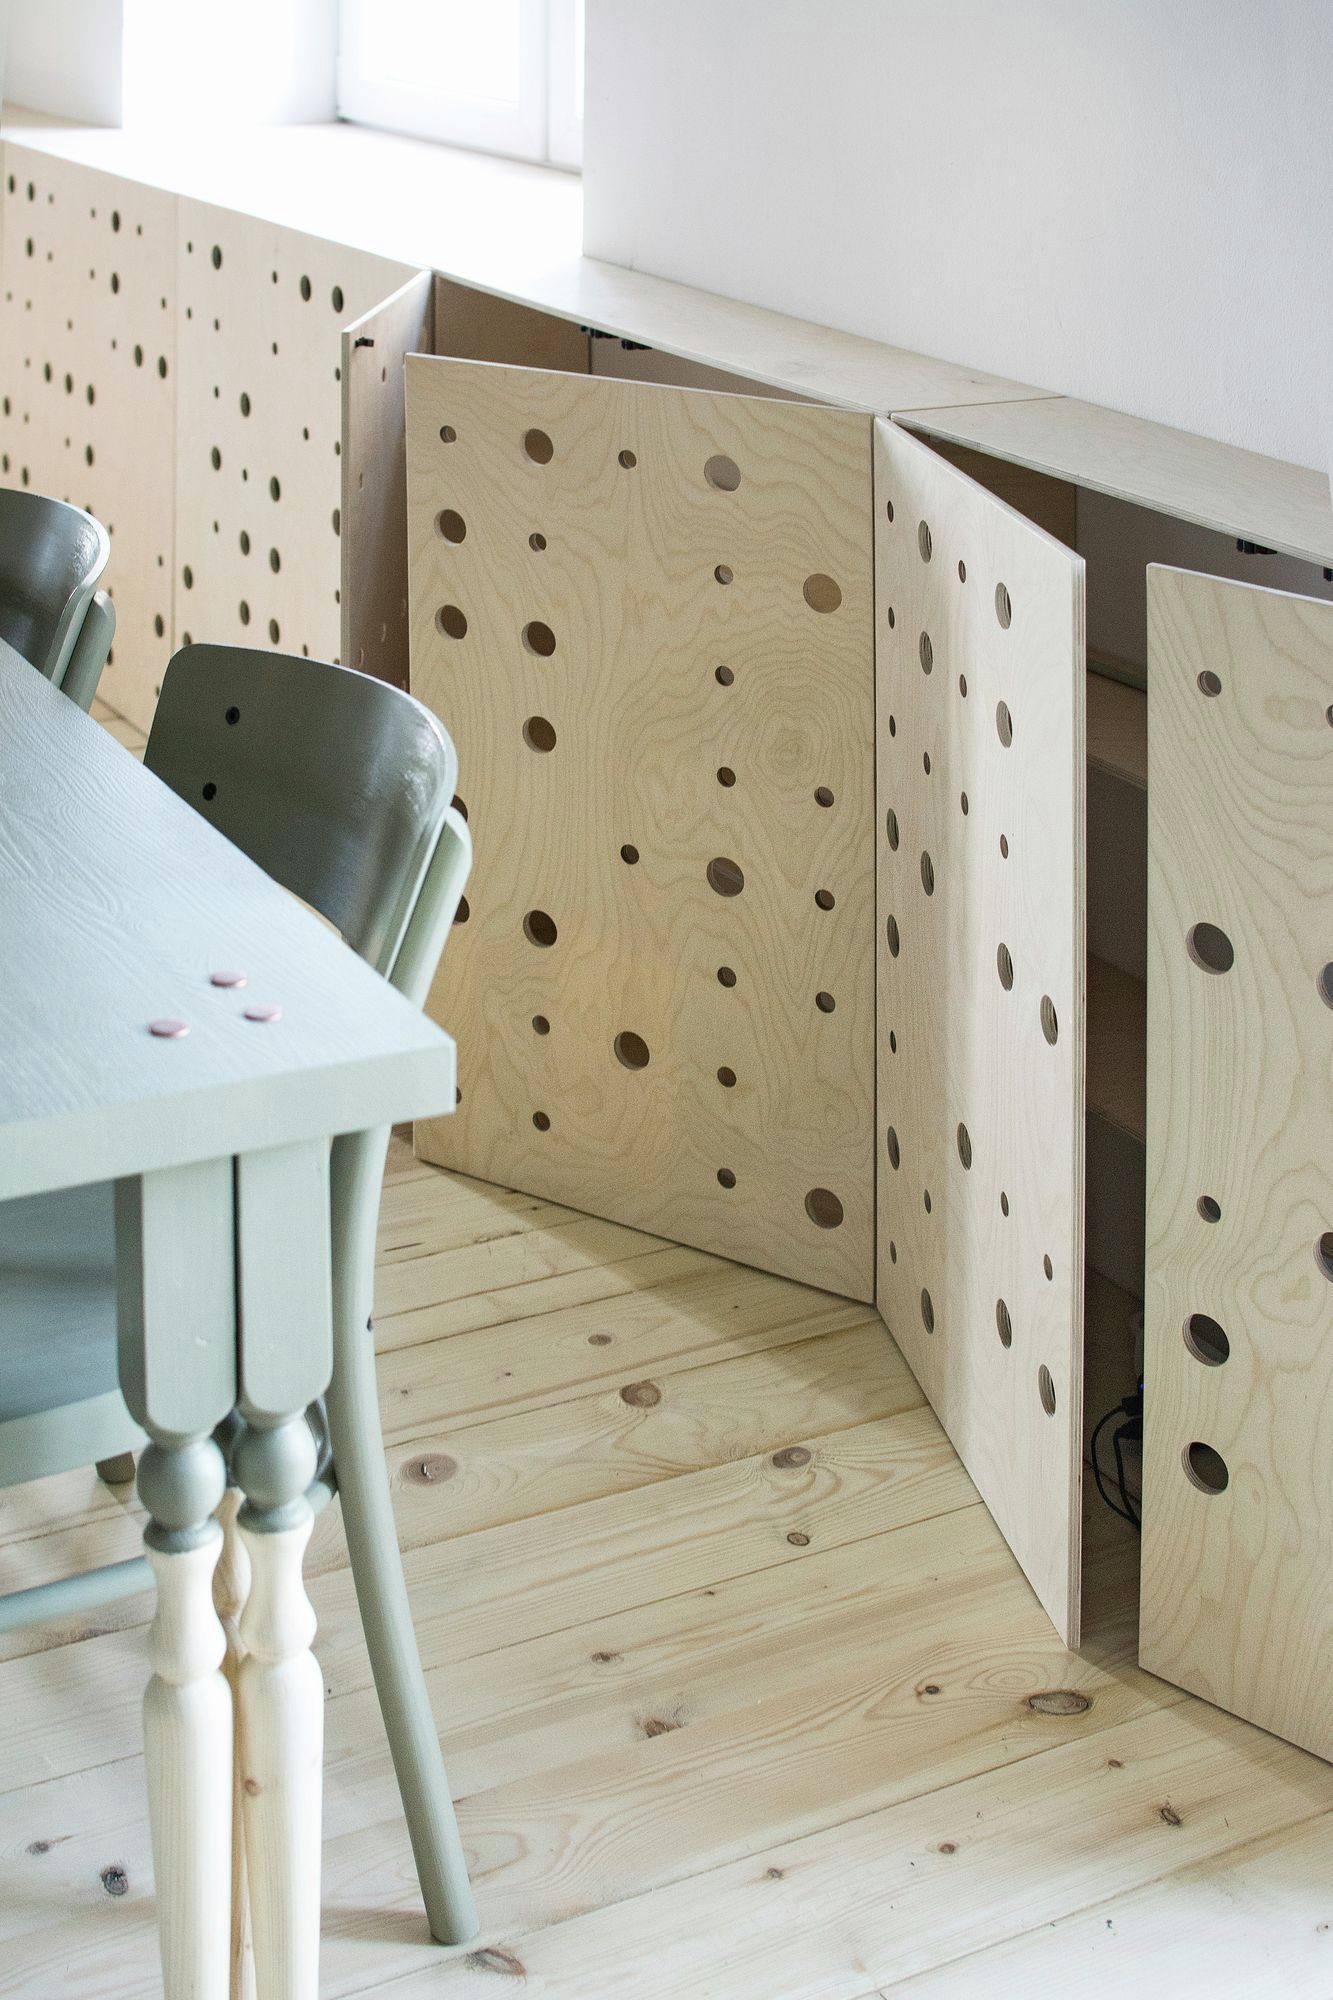 eclectic apartment in St. Petersburg plywood boxes